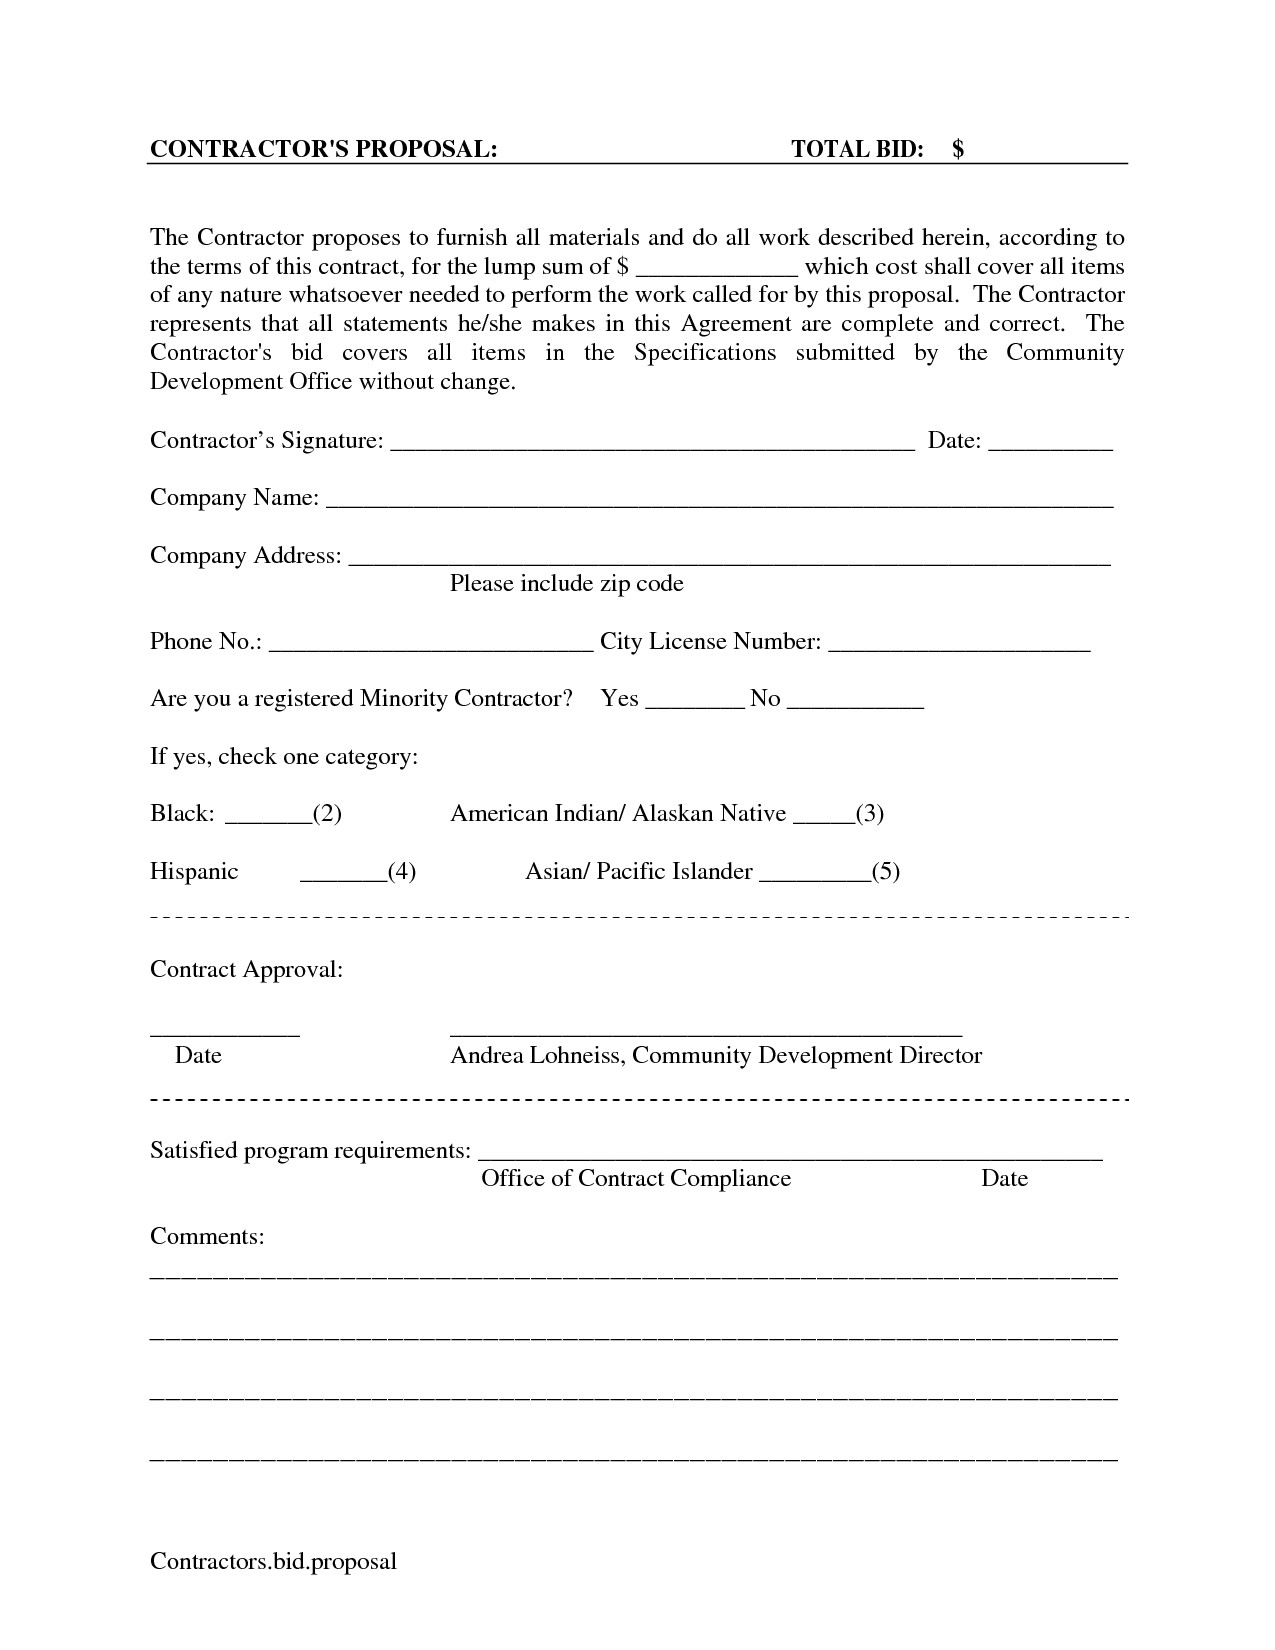 Commercial Cleaning Proposal Template Free Printable Blank Bid Proposal forms